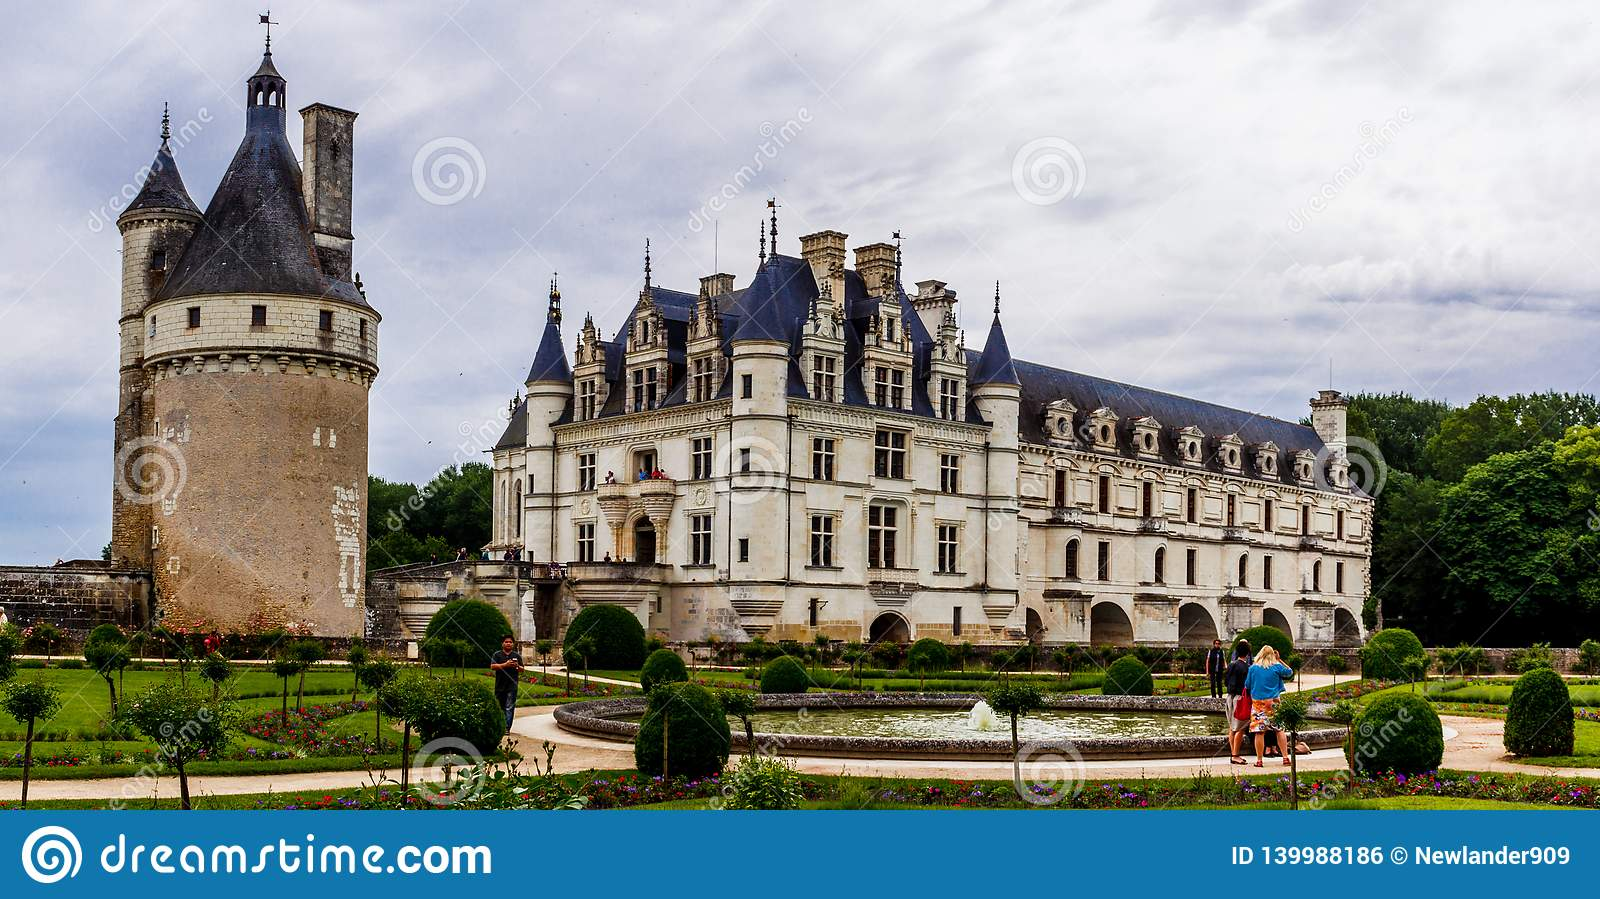 Medieval Chateau de Chenonceau spanning River Cher in Loire Valley in France.